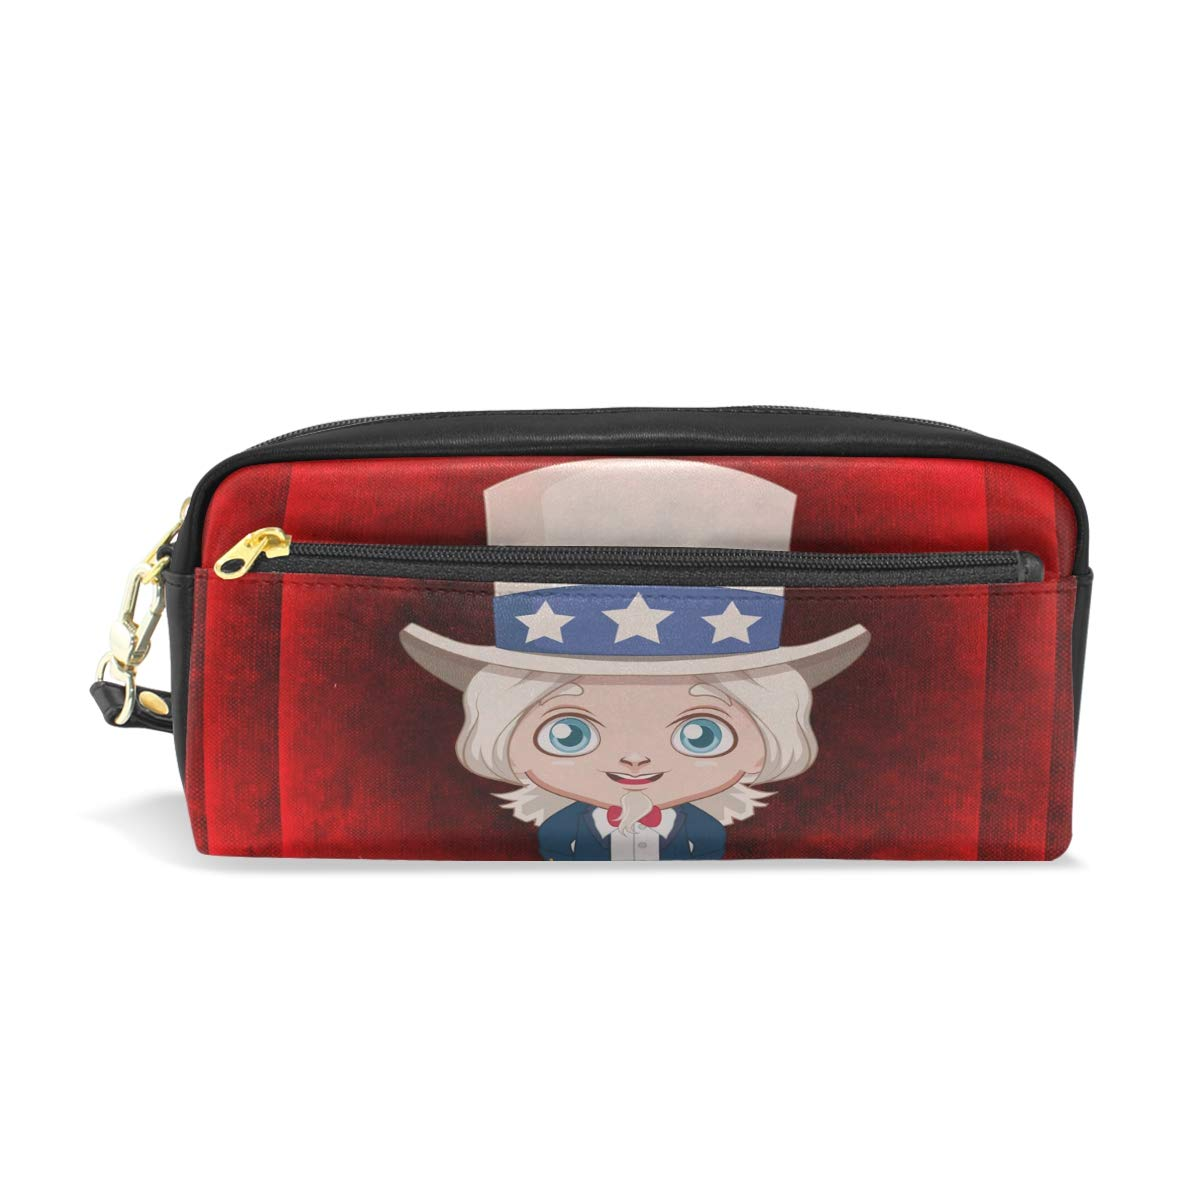 Red America Boy Leather Student Pencil Case Cosmetic Pen Bag Makeup Pouch for Teen Girl